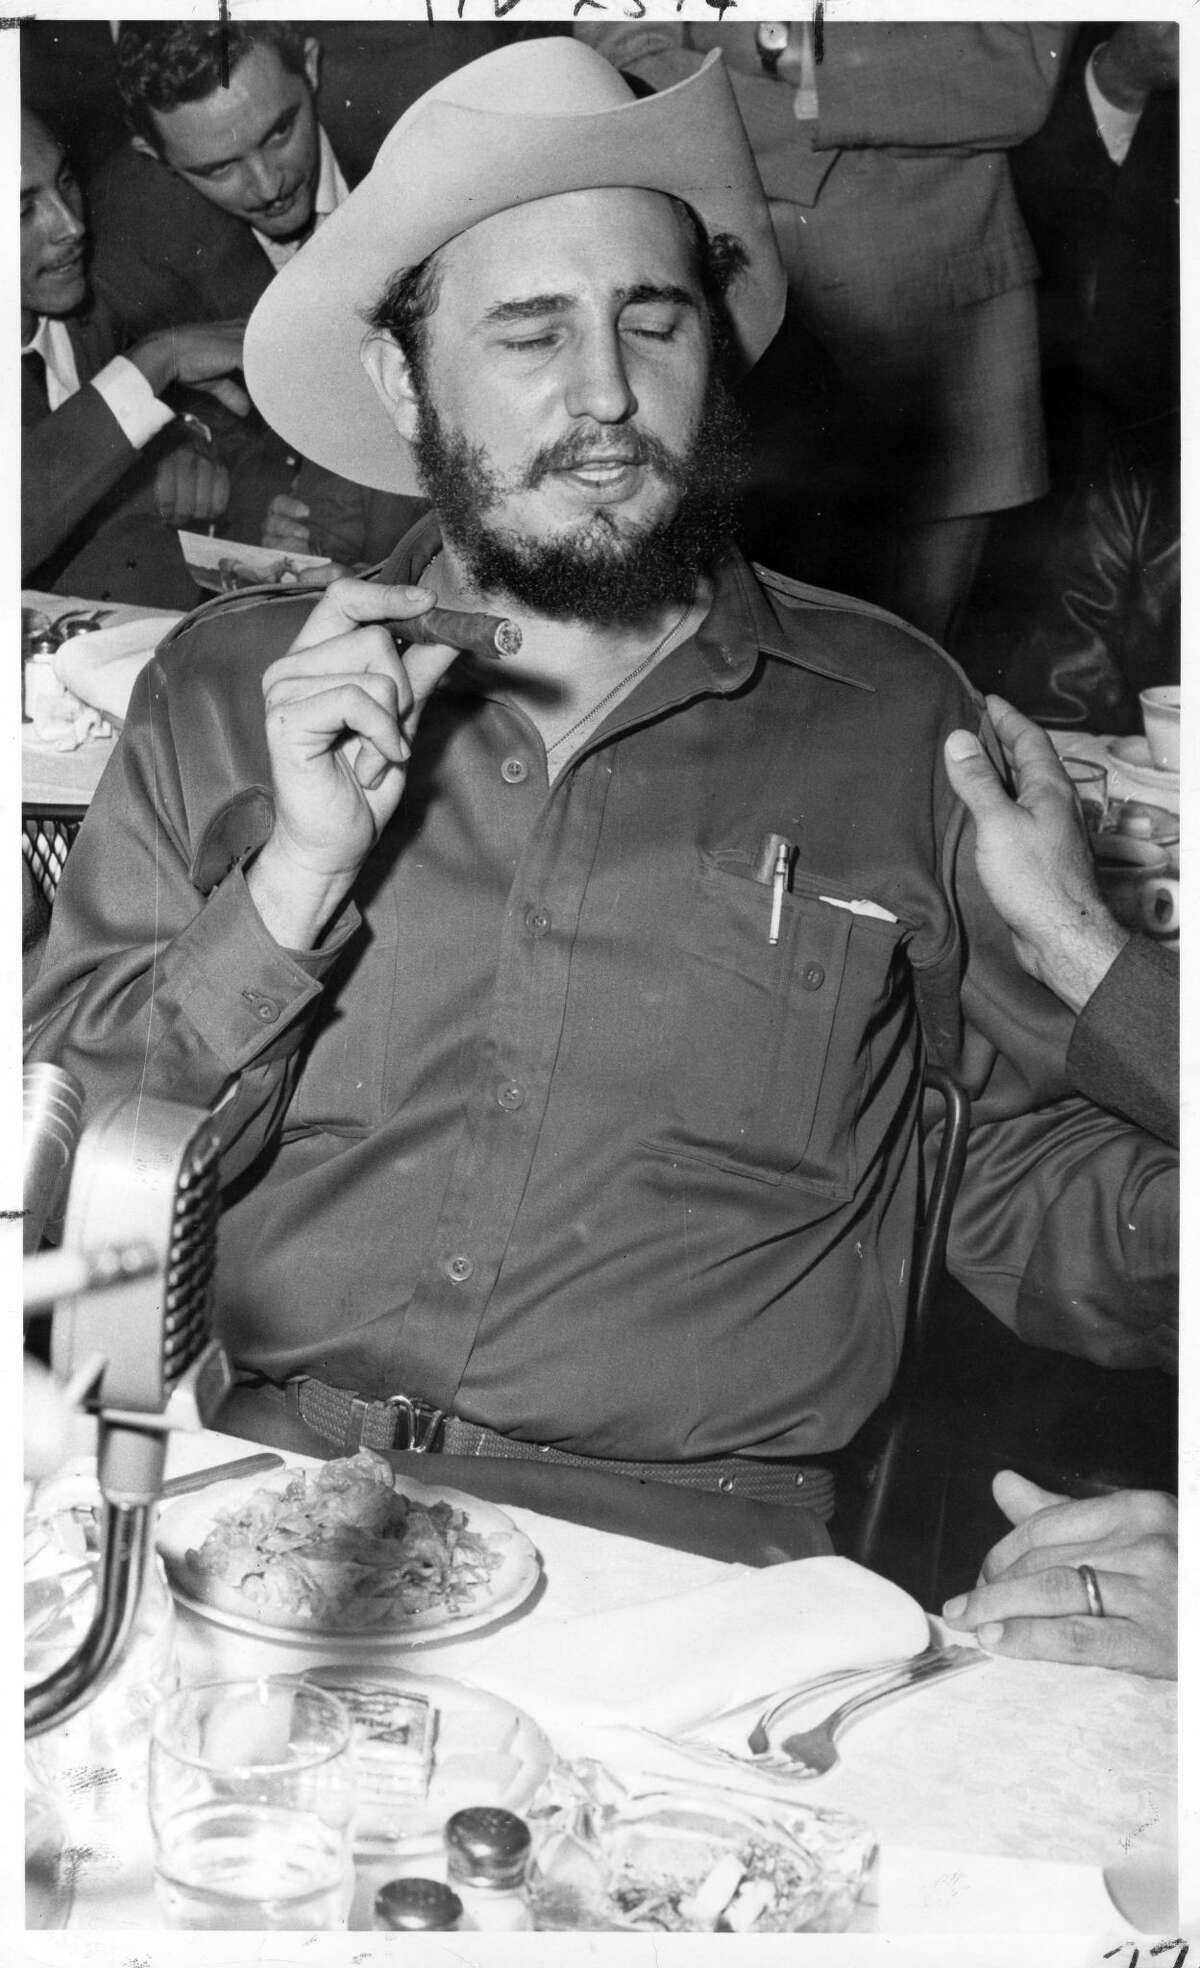 PHOTOS: When Fidel Castro came to Houston On April 27, 1959 32-year-old Cuban leader Fidel Castro came to Houston as a man who many thought would bring democracy to a small country just a few hours plane ride from Texas. The Cuban leader was on a two-week tour of the United States, Canada, and South America and was treated as a celebrity of sorts. Click through to see more of Castro's visit to Houston in 1959...